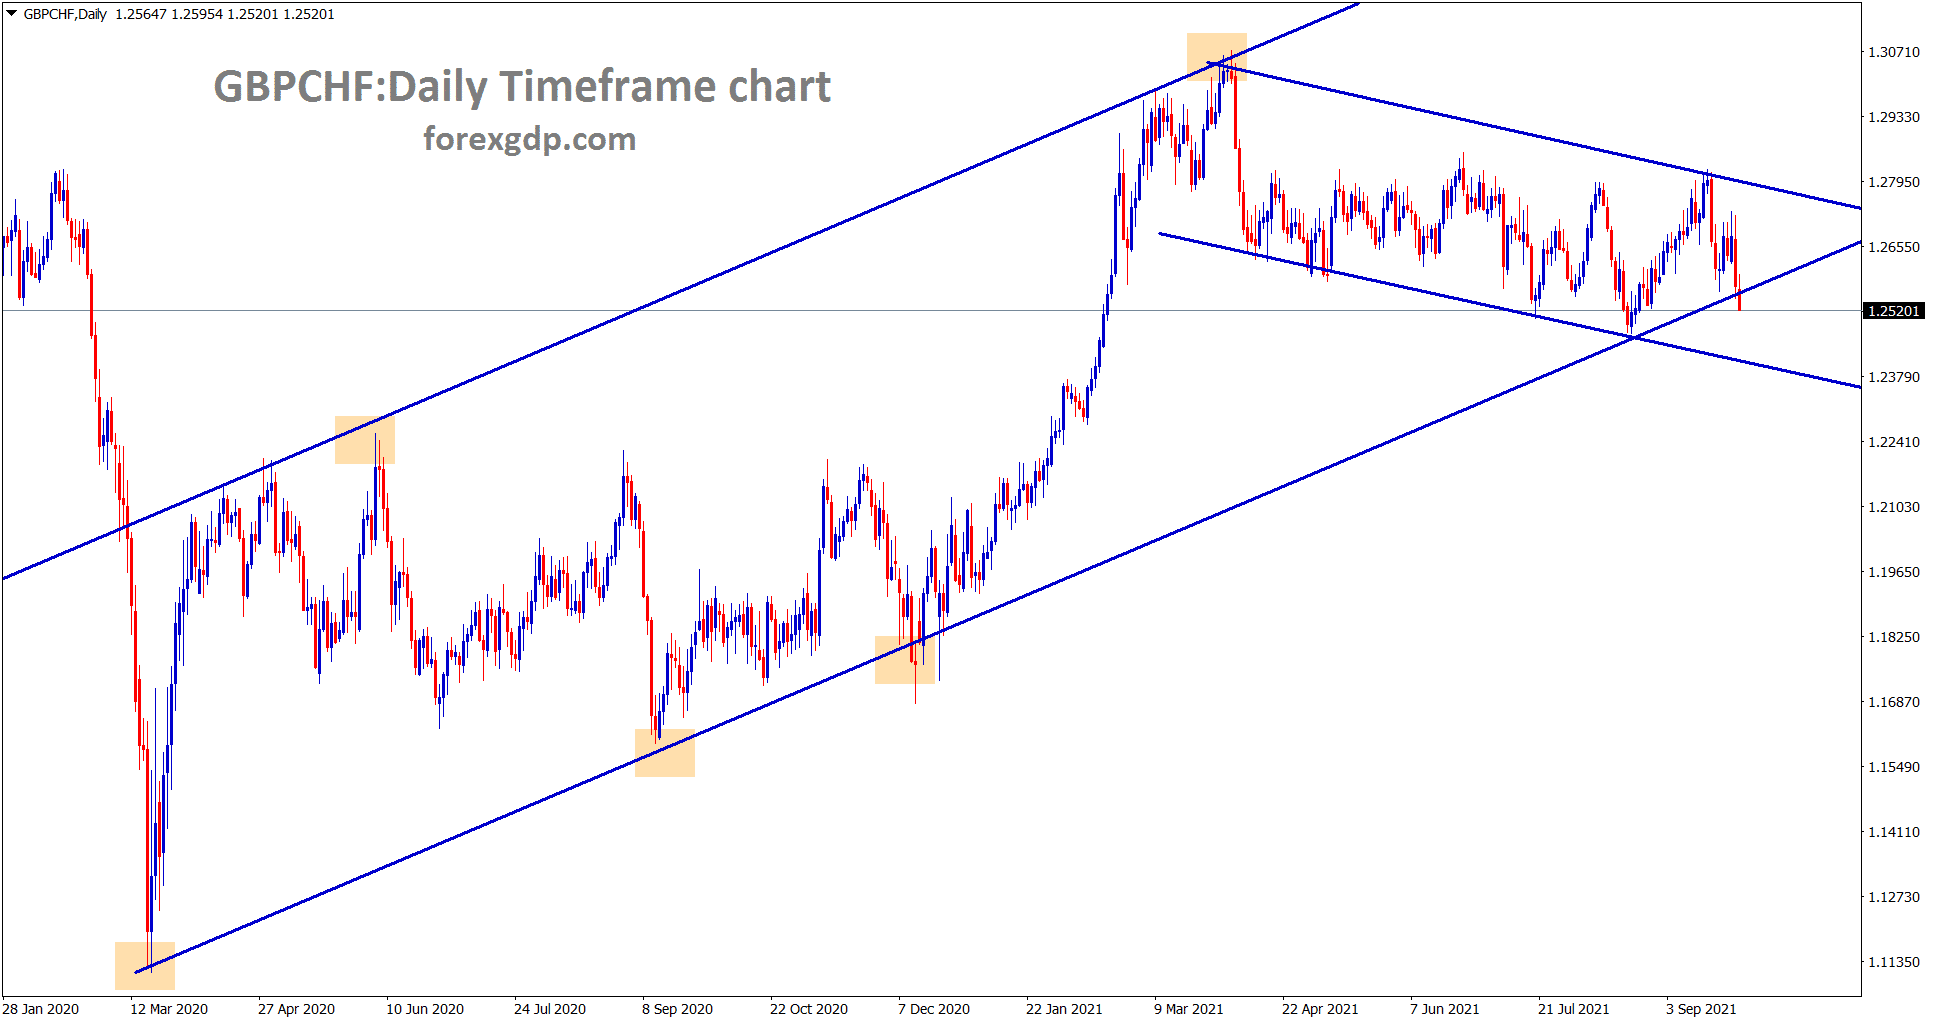 GBPCHF is trying to break the higher low of the uptrend line wait for the strong confirmation of breakout or reversal